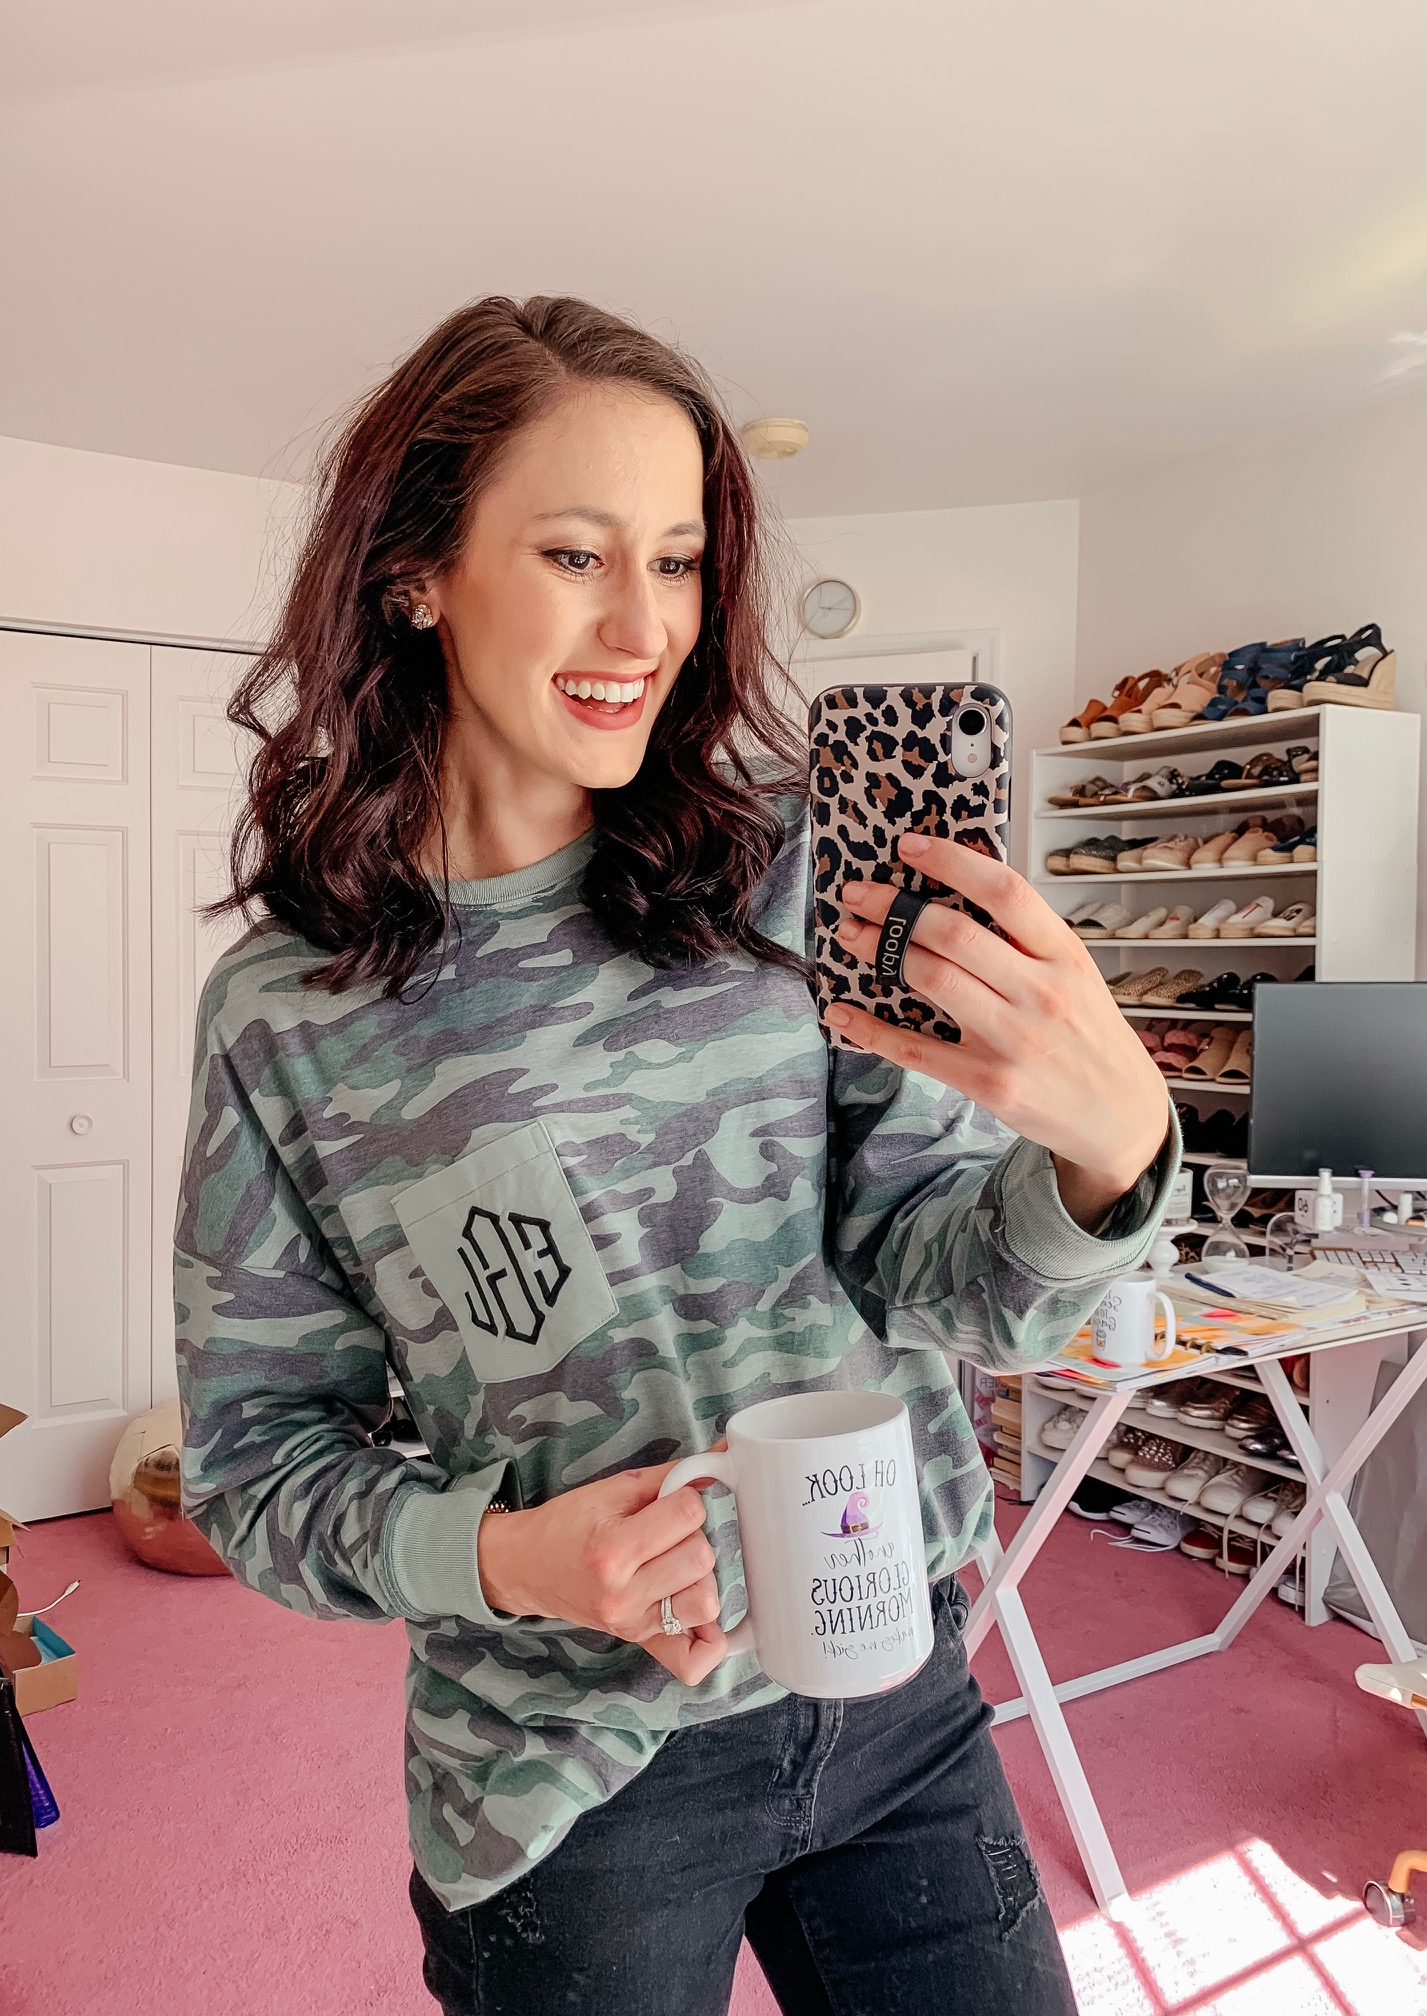 Marley Lilly monogrammed camo shirt - Cool Sh*t I Lovelovelove on Coming Up Roses